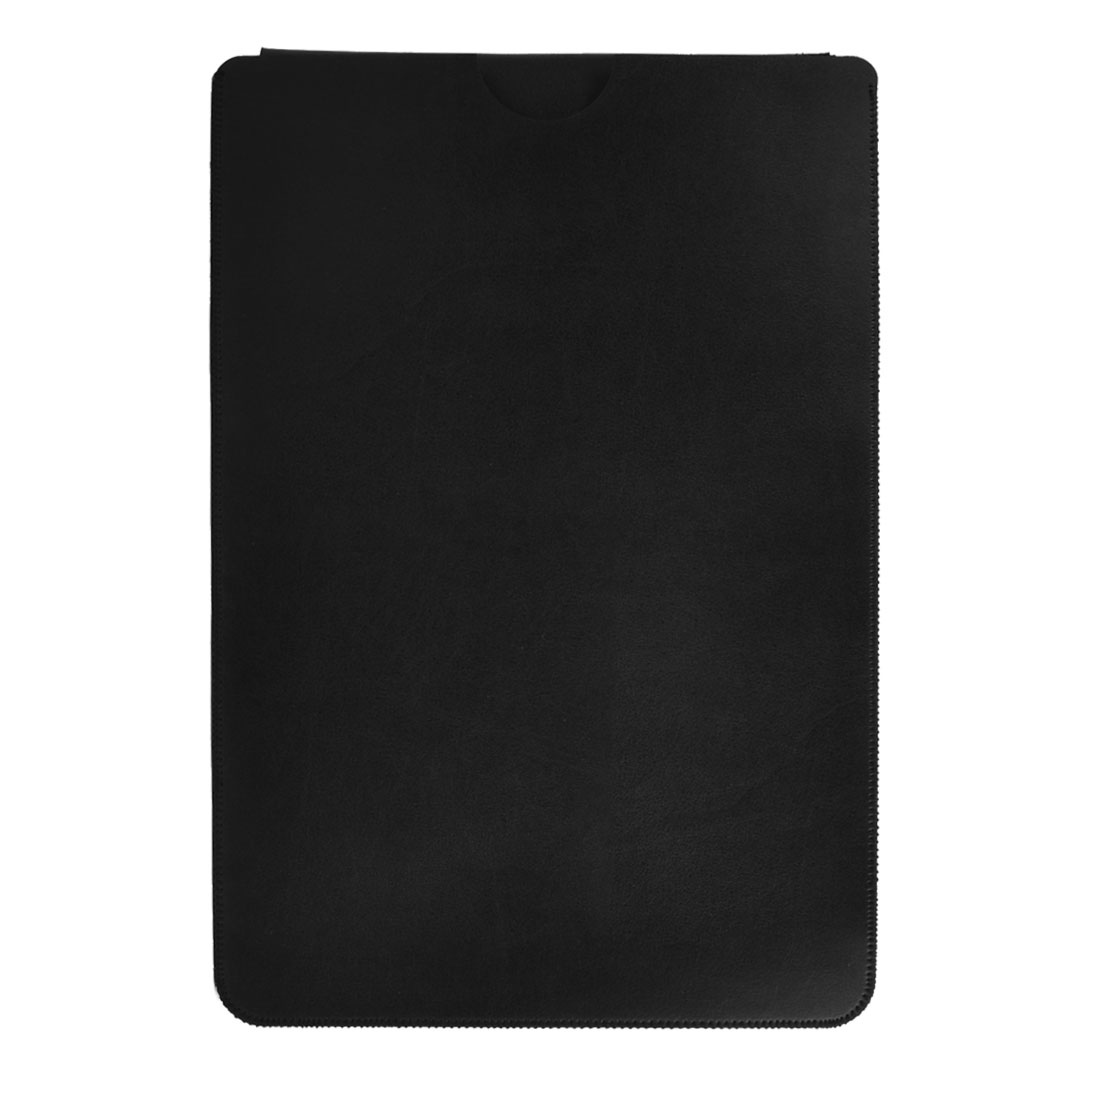 Office Computer PU Leather Carry Bag Pouch Laptop Sleeve Black for Macbook Air 11 Inch